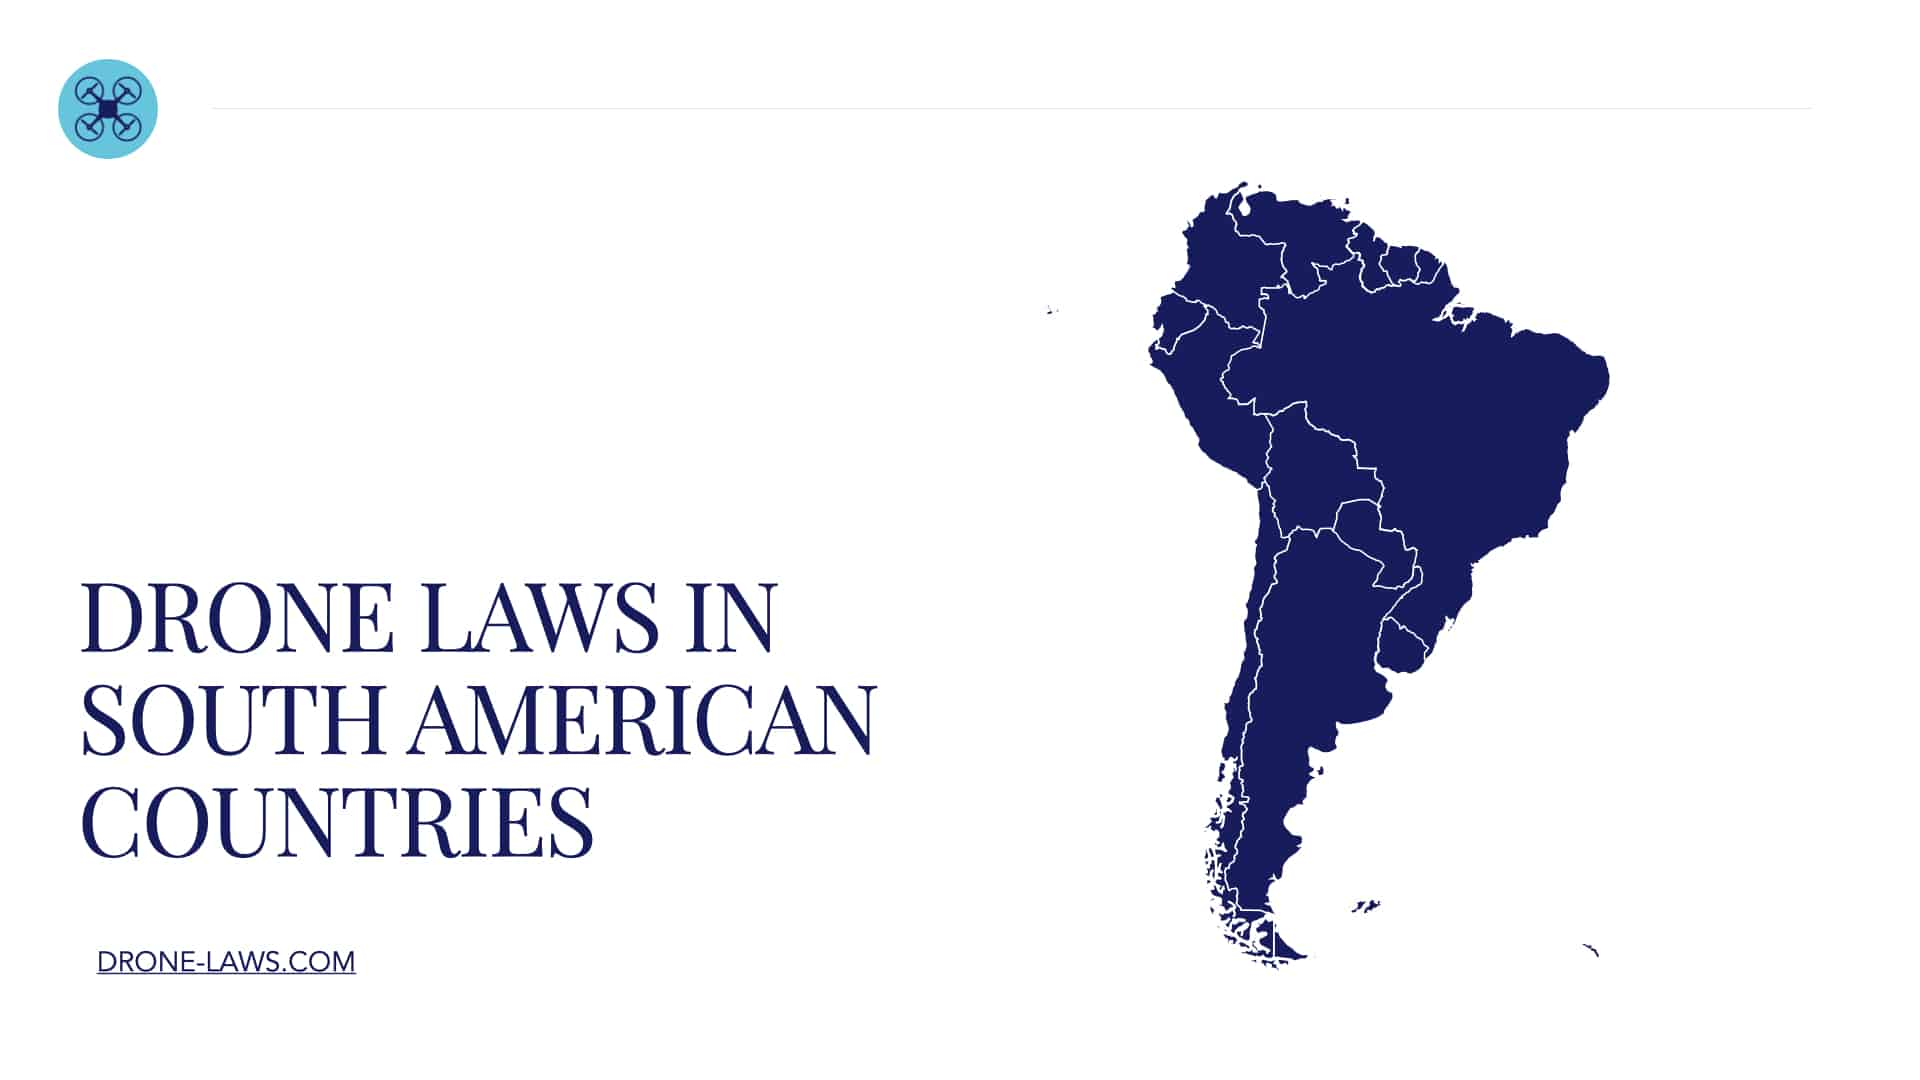 Drone Laws in South American Countries